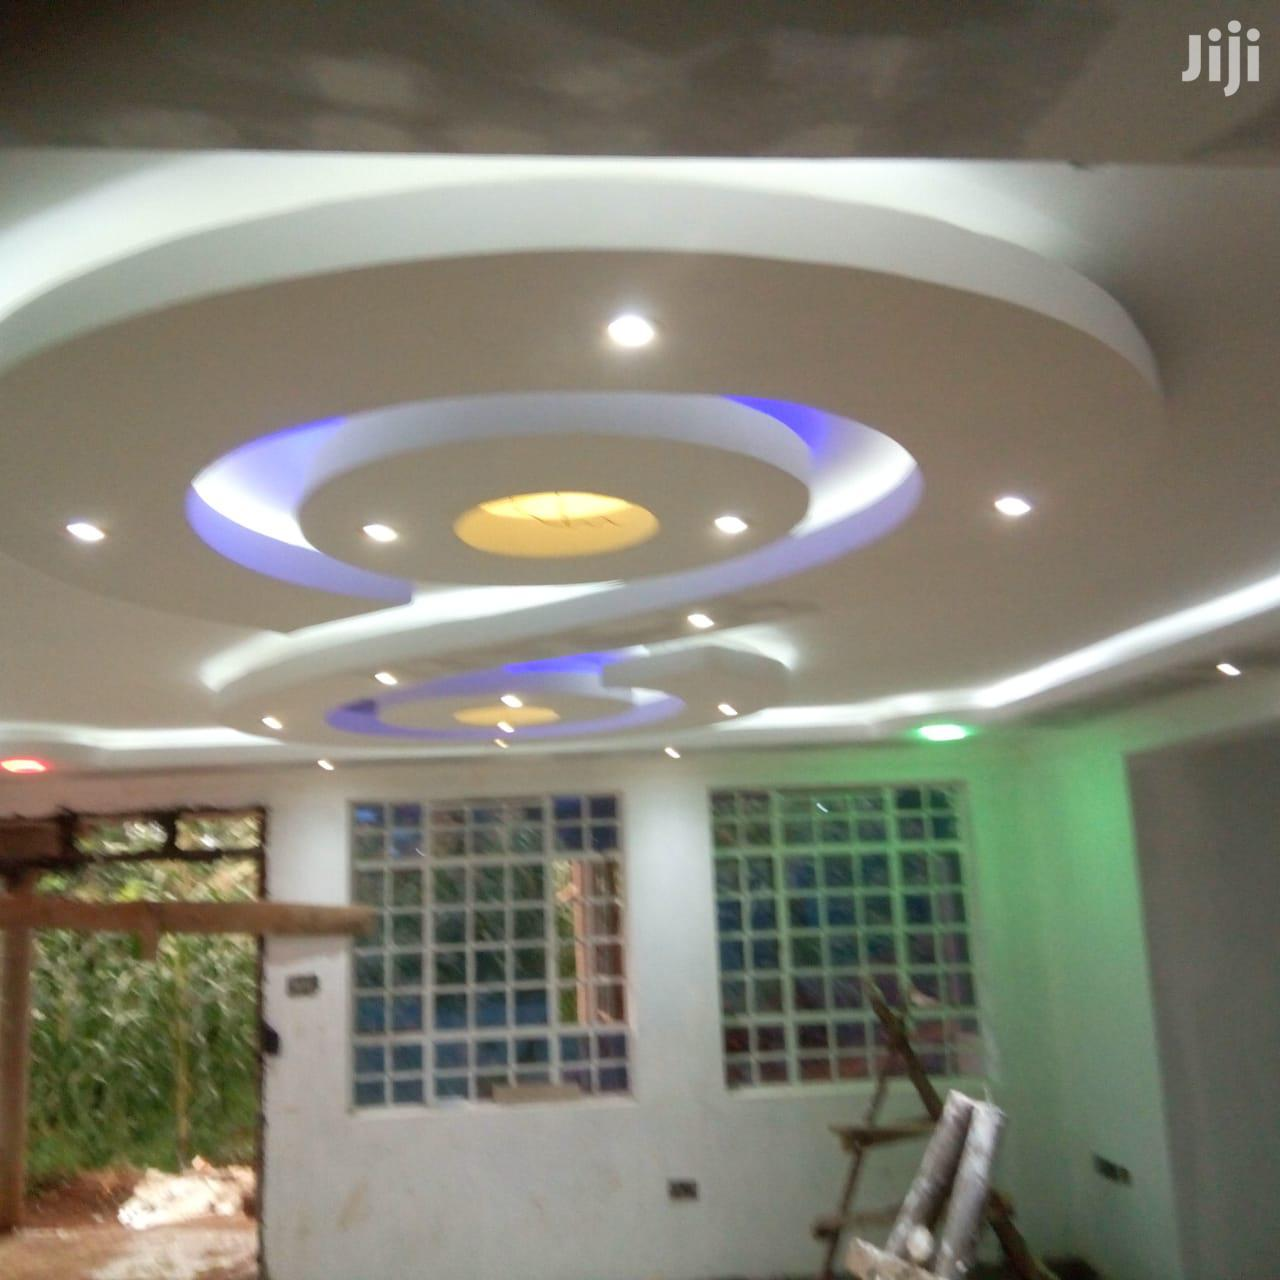 Gympsum Ceiling Designs Supply And Install